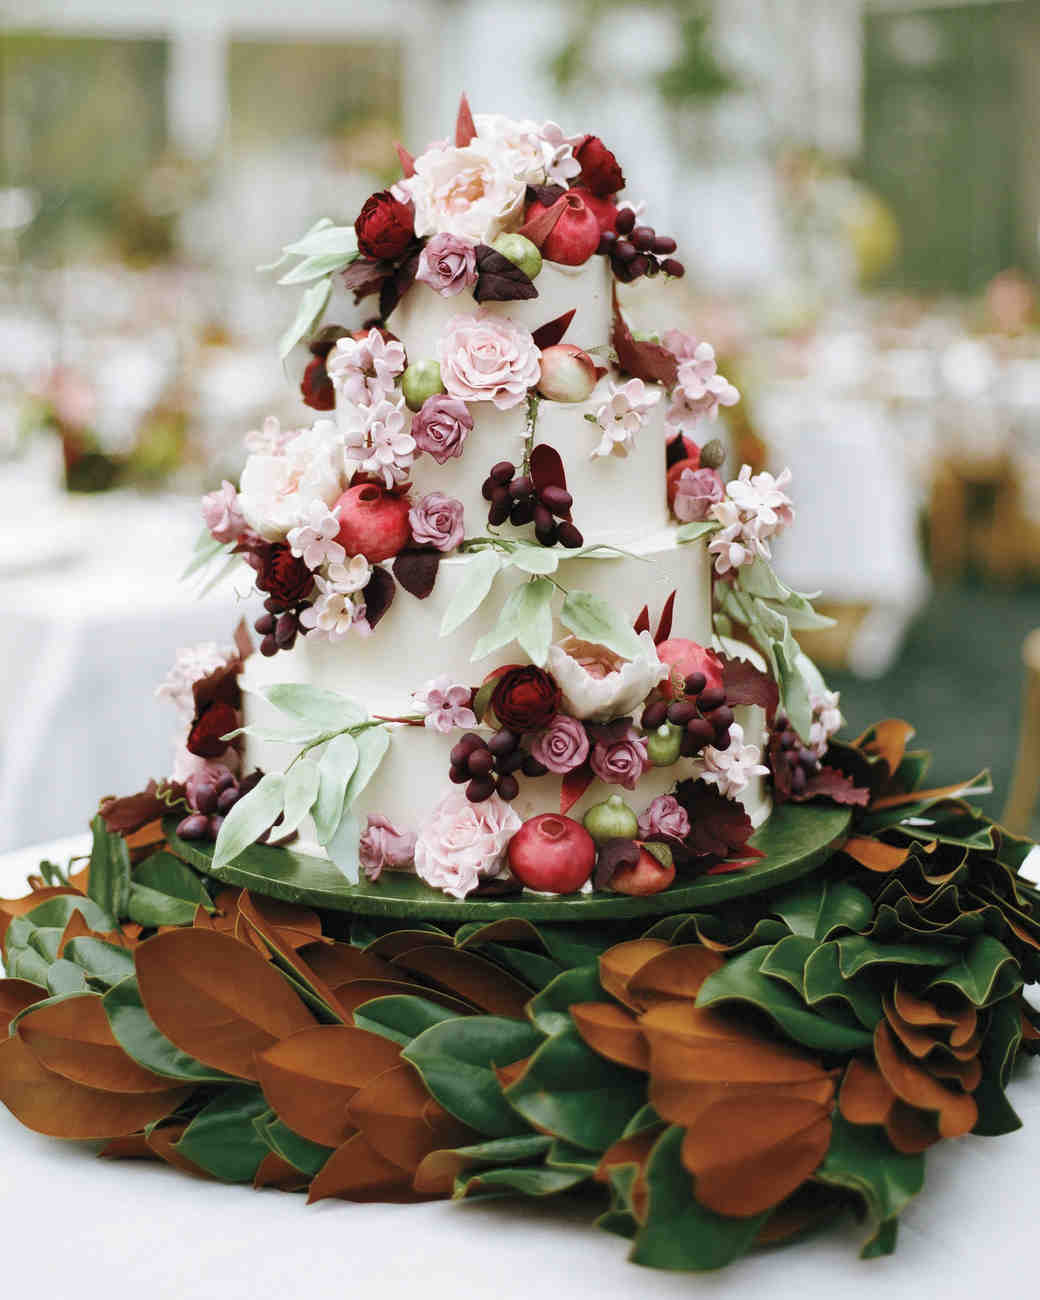 Wedding cake automne 2